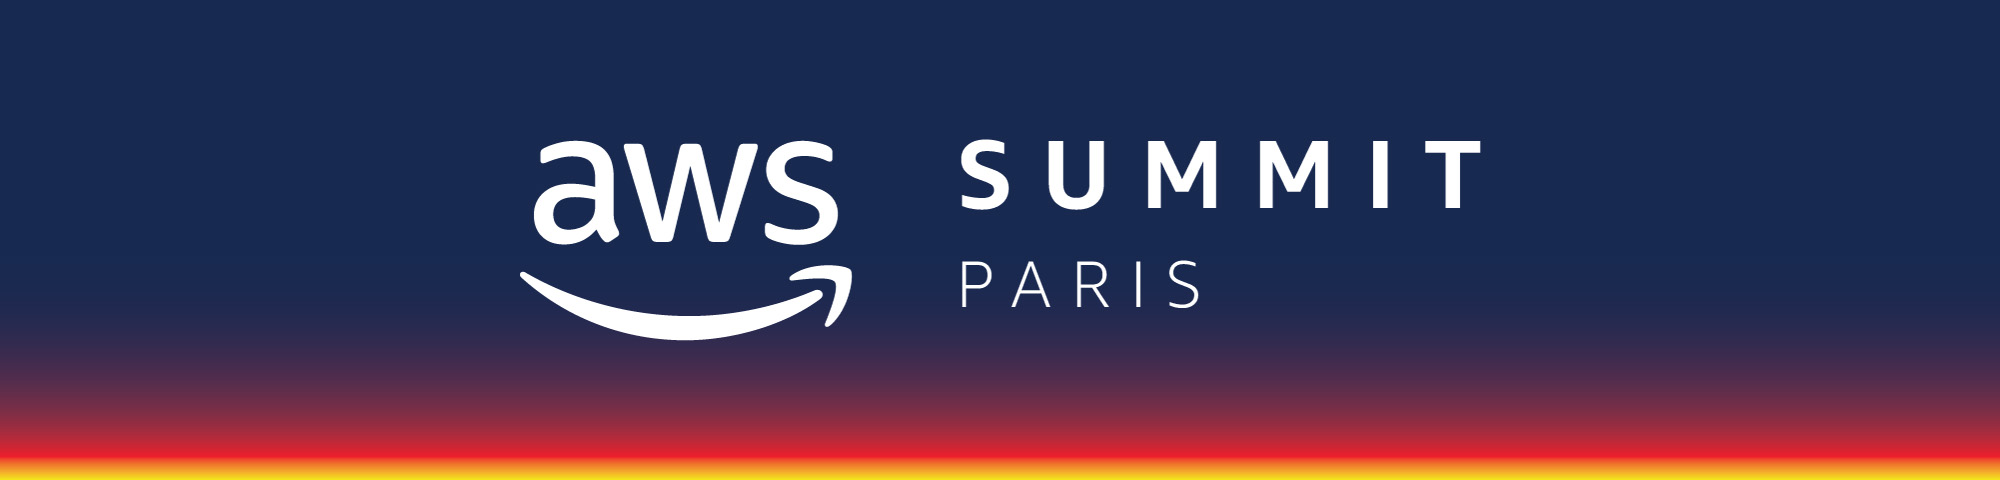 AWS summit paris 2018